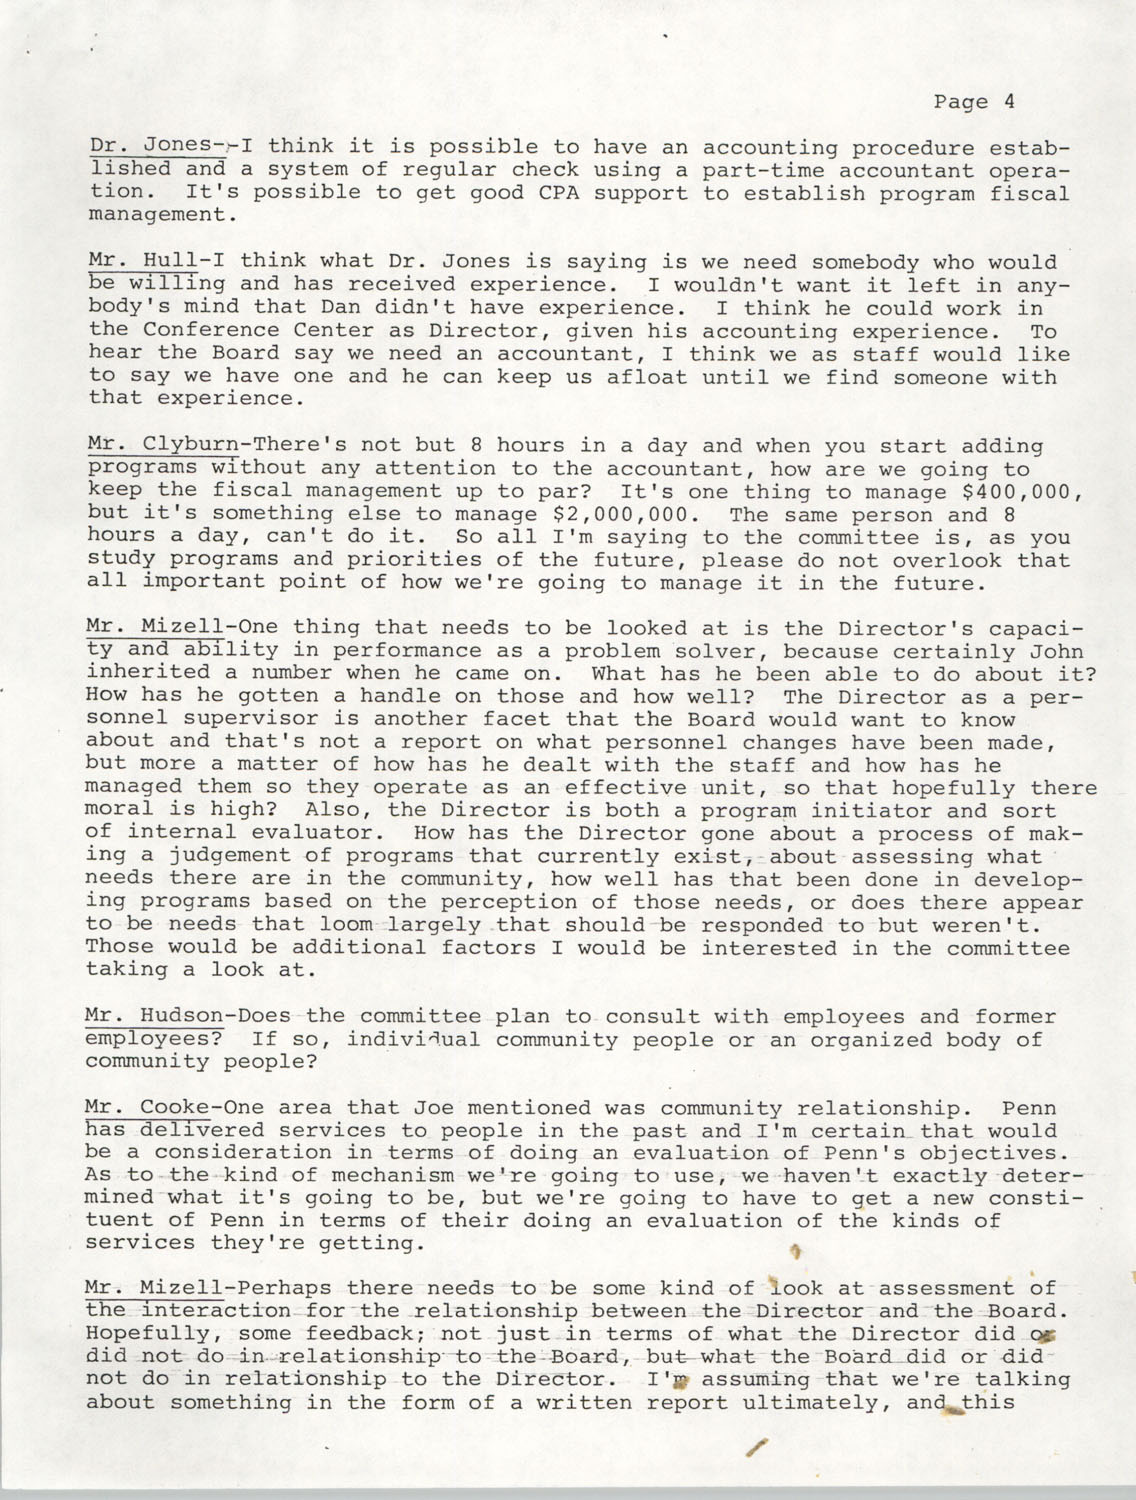 Minutes, Annual Board Meeting, Penn Community Services, October 22, 1977, Page 4